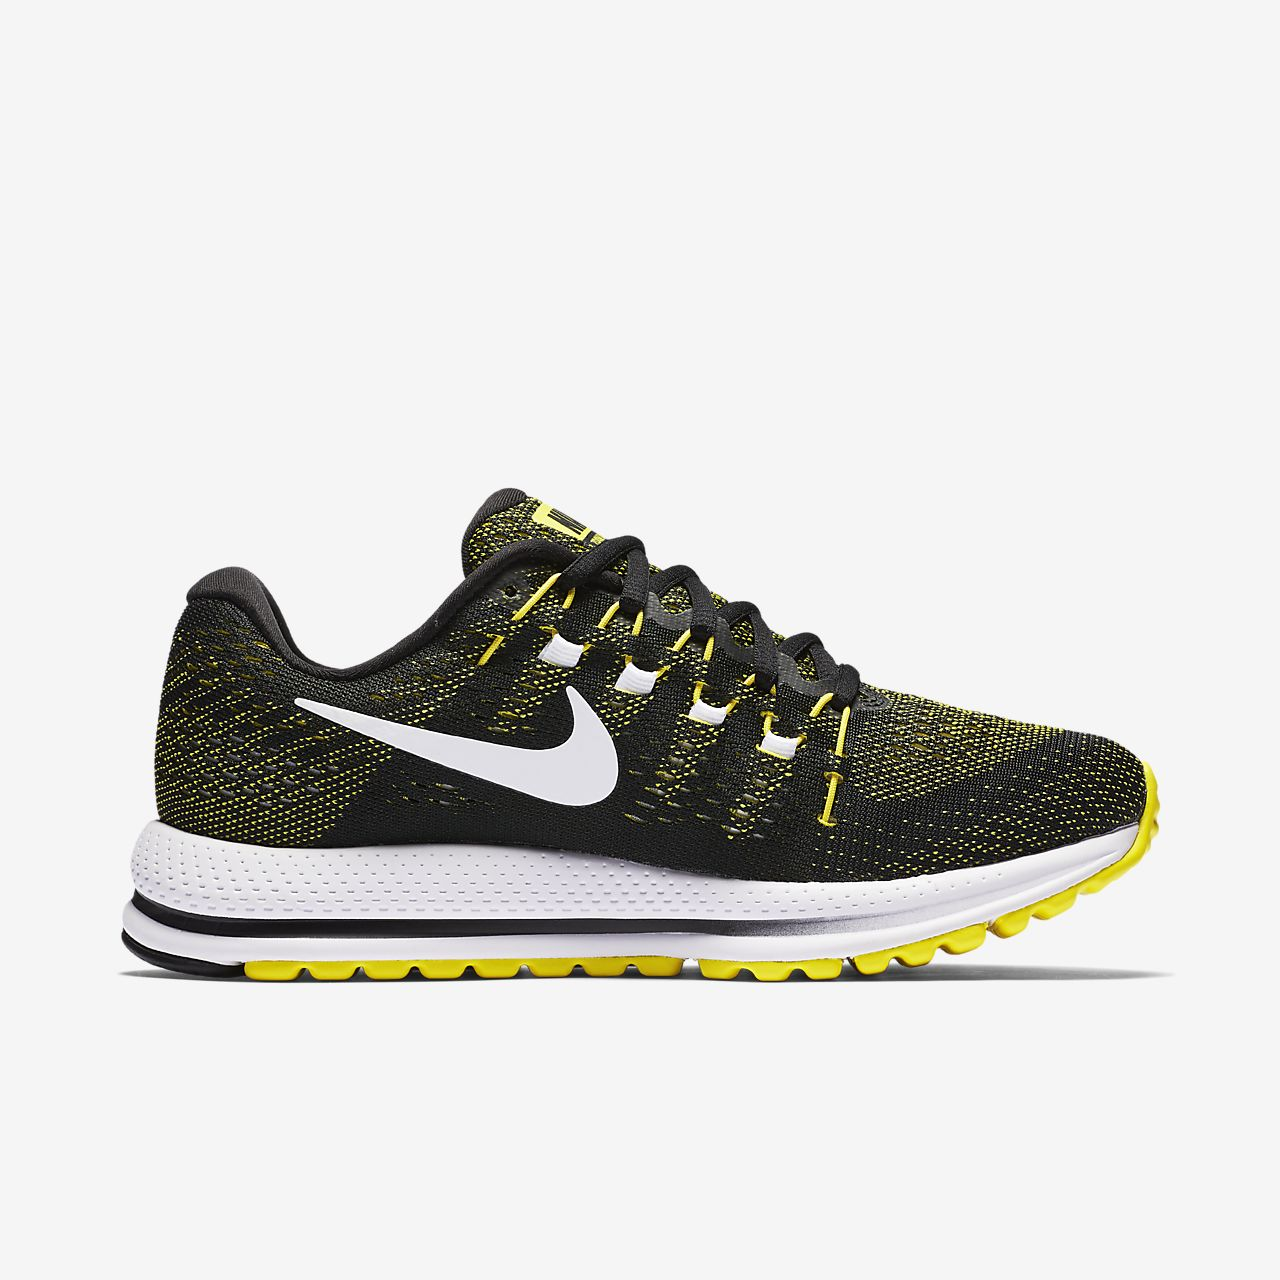 Wmns Nike Air Zoom Vomero 11 - Chaussures - Bas-tops Et Baskets Nike A5vrJdXekS